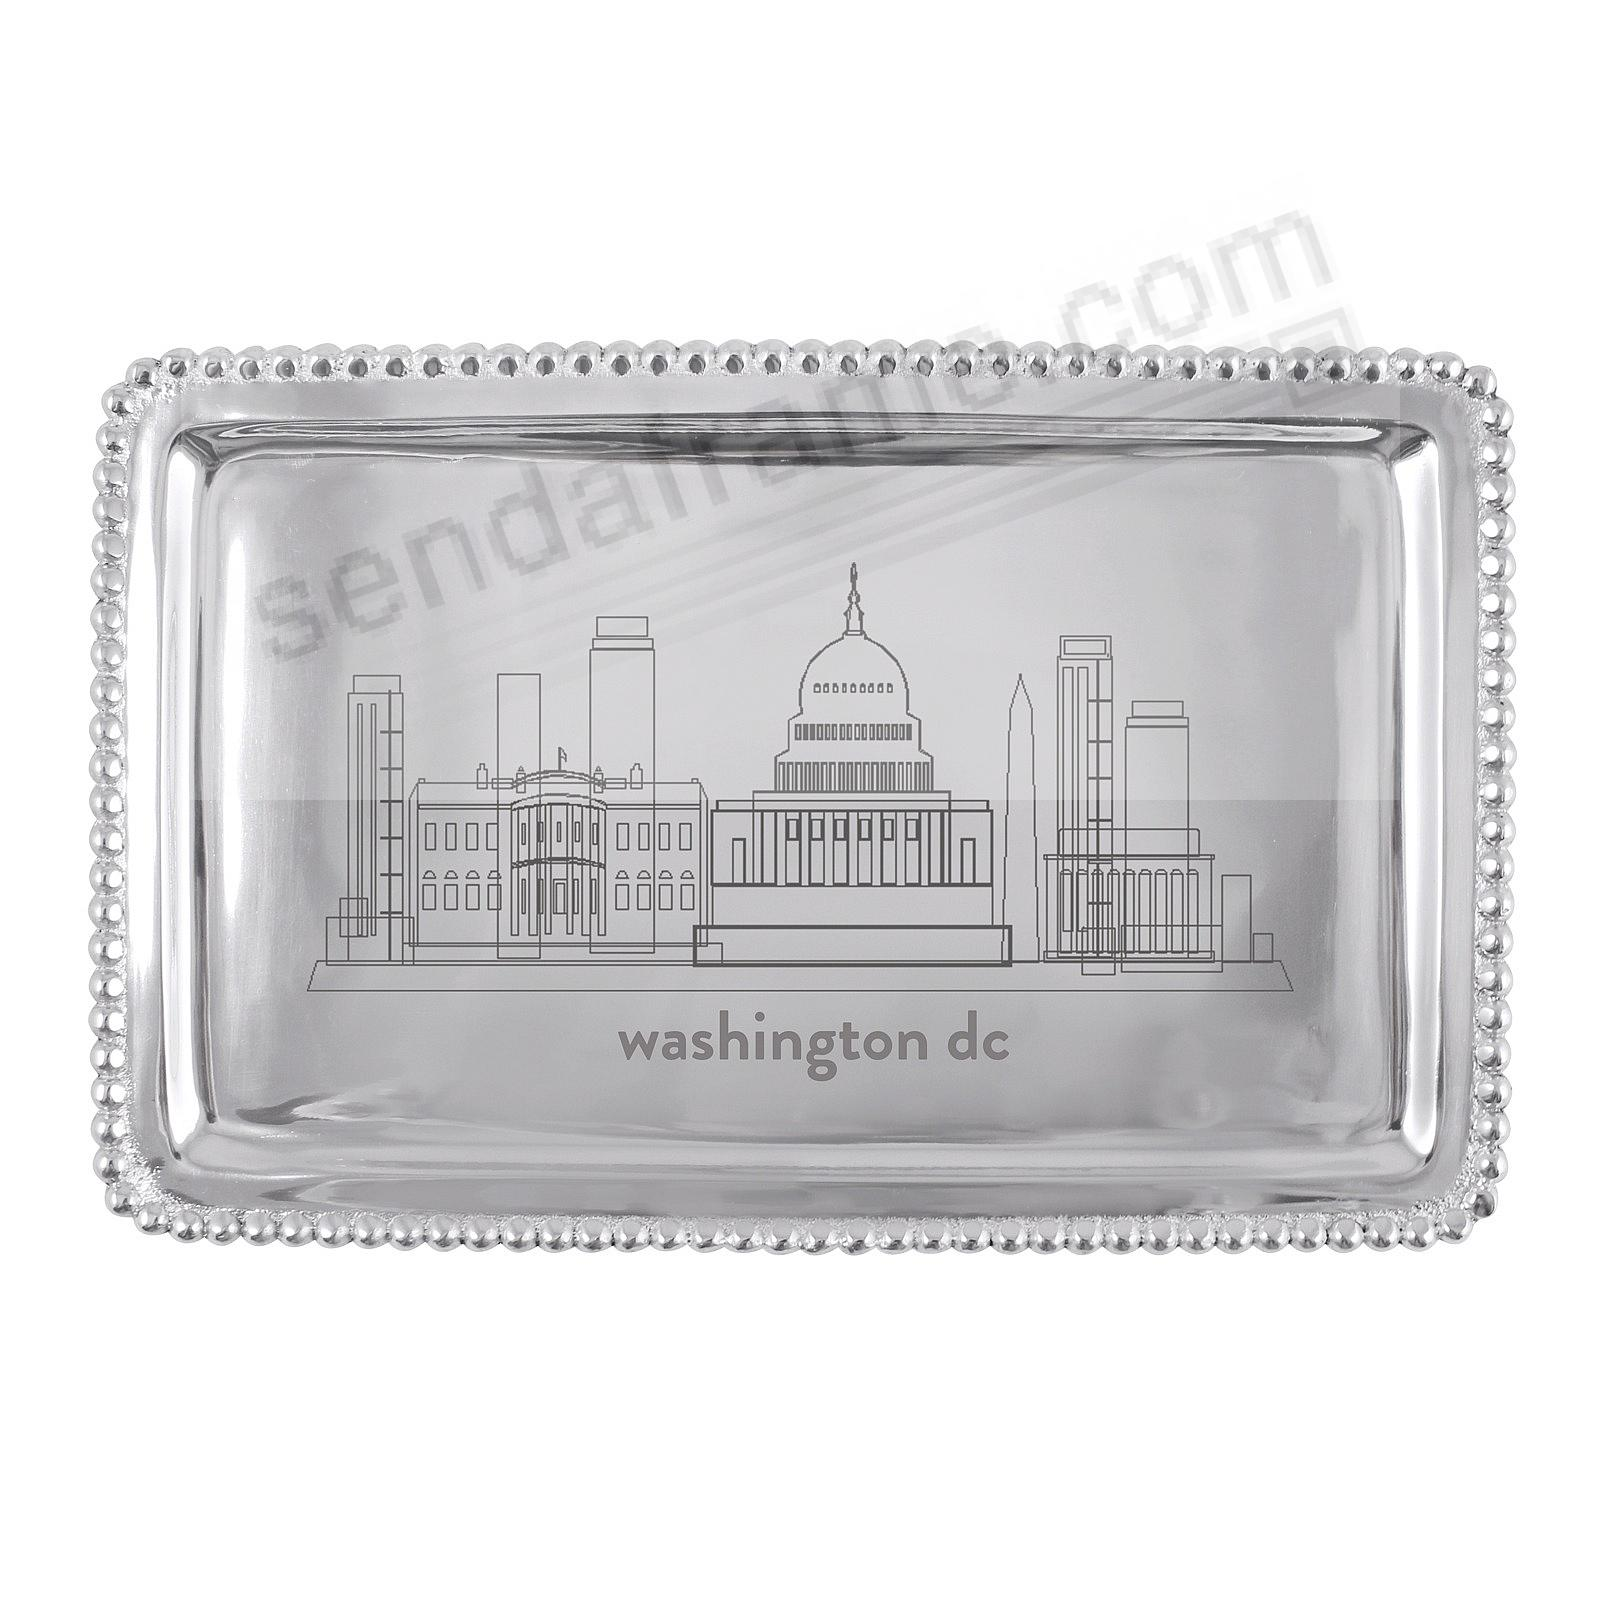 The WASHINGTON DC CITYSCAPE BEADED BUFFET TRAY crafted by Mariposa®